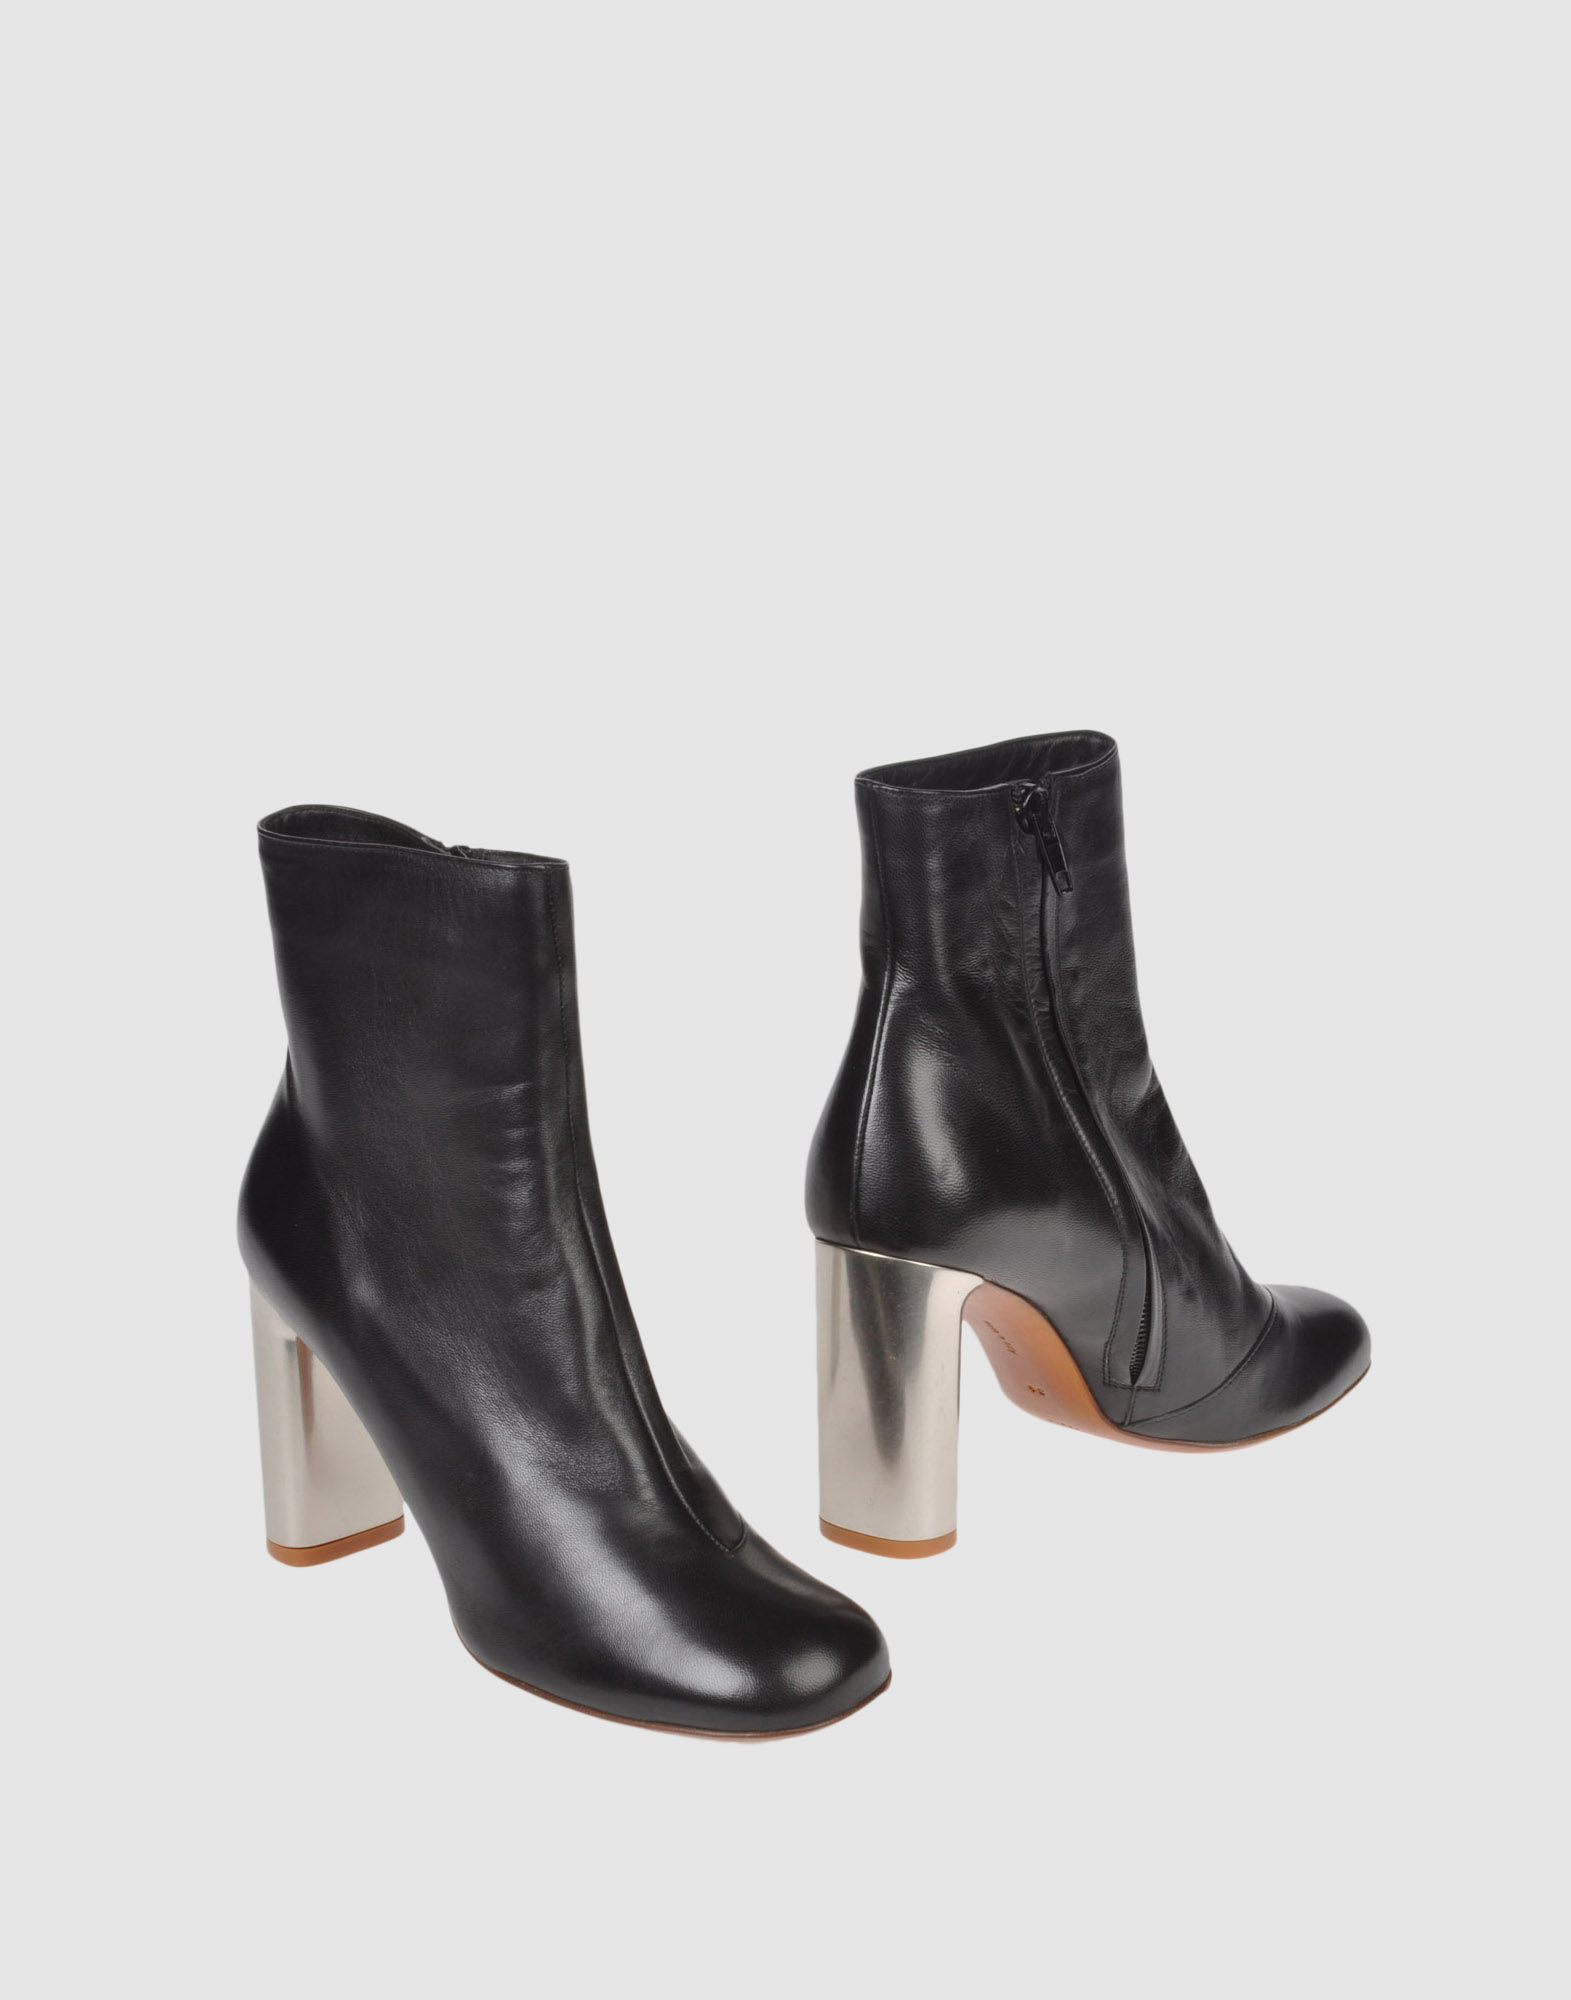 Celine Ankle Boots in Black